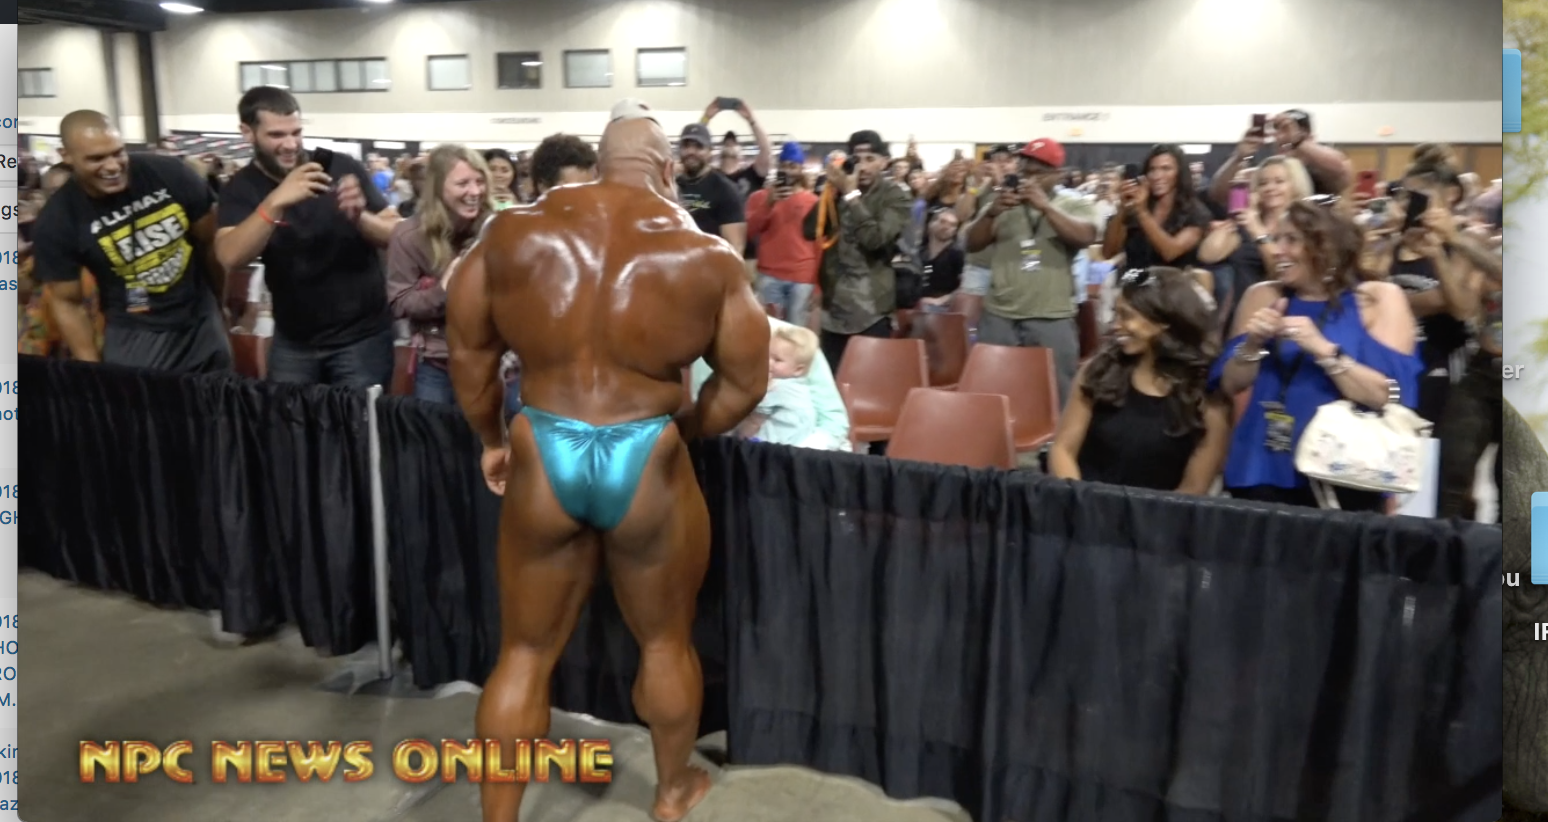 2018 NPC PHIL HEATH CLASSIC HIGHLIGHT VIDEO